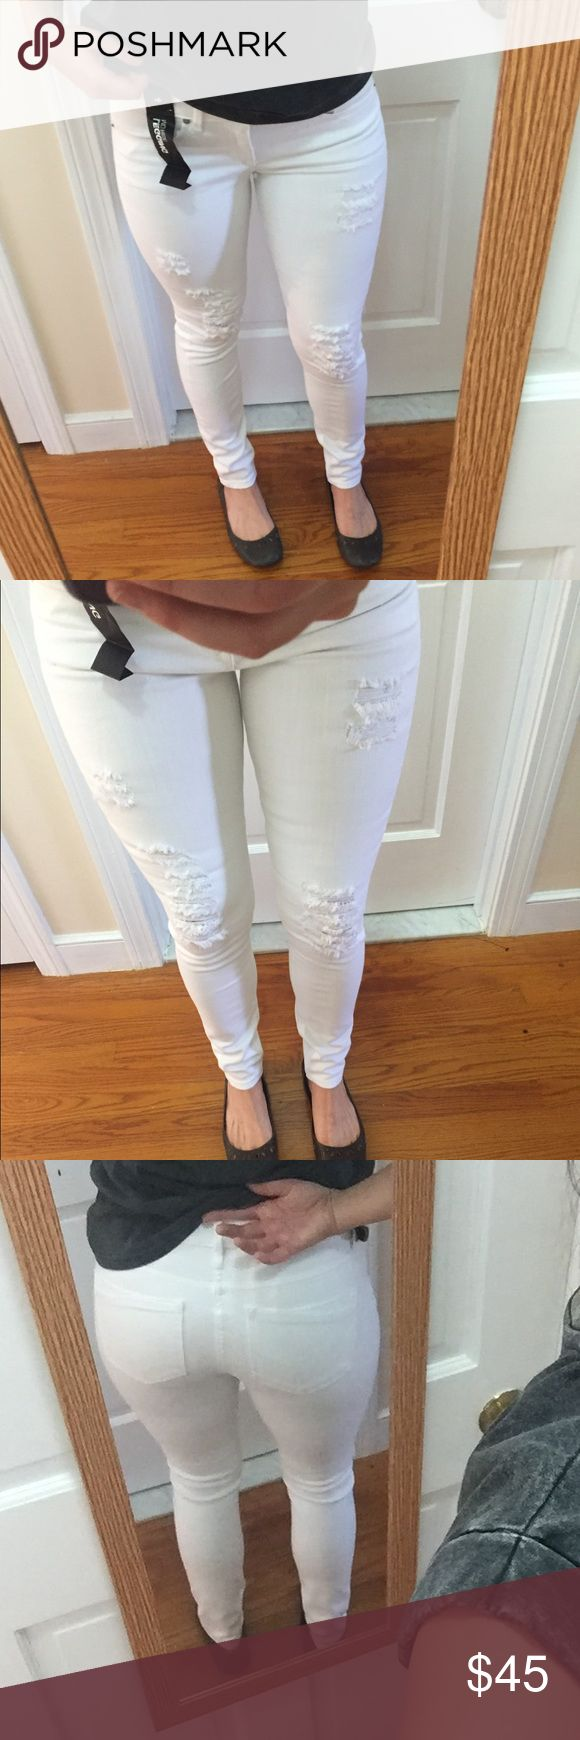 NWT Distressed White Skinnies A brand new, perfectly distressed pair of white skinny jeans from Express! Super stretchy and soft with rips in all the right places - the rips are done pretty tightly so there are big gaping holes or places where your skin will smoosh out :) $88 price, tags still attached. Happy to answer any questions! Generous size 4 - i'm a 6 and these are doable, just pretty snug! Express Jeans Skinny